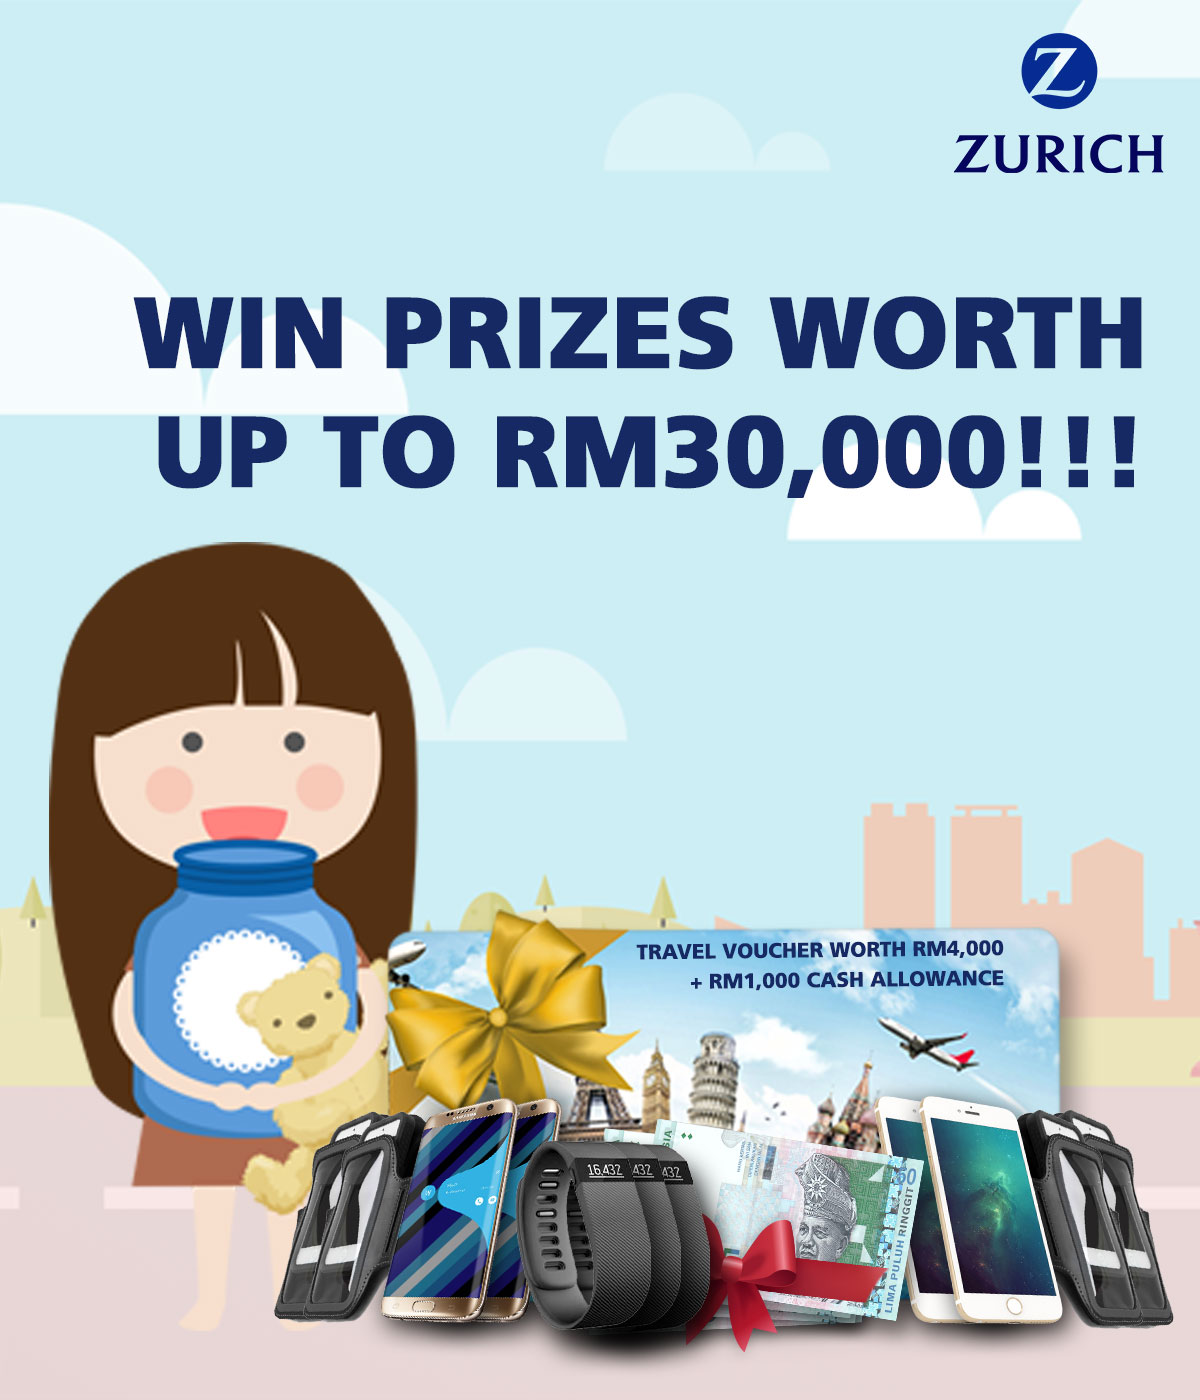 Image from Zurich Insurance Malaysia